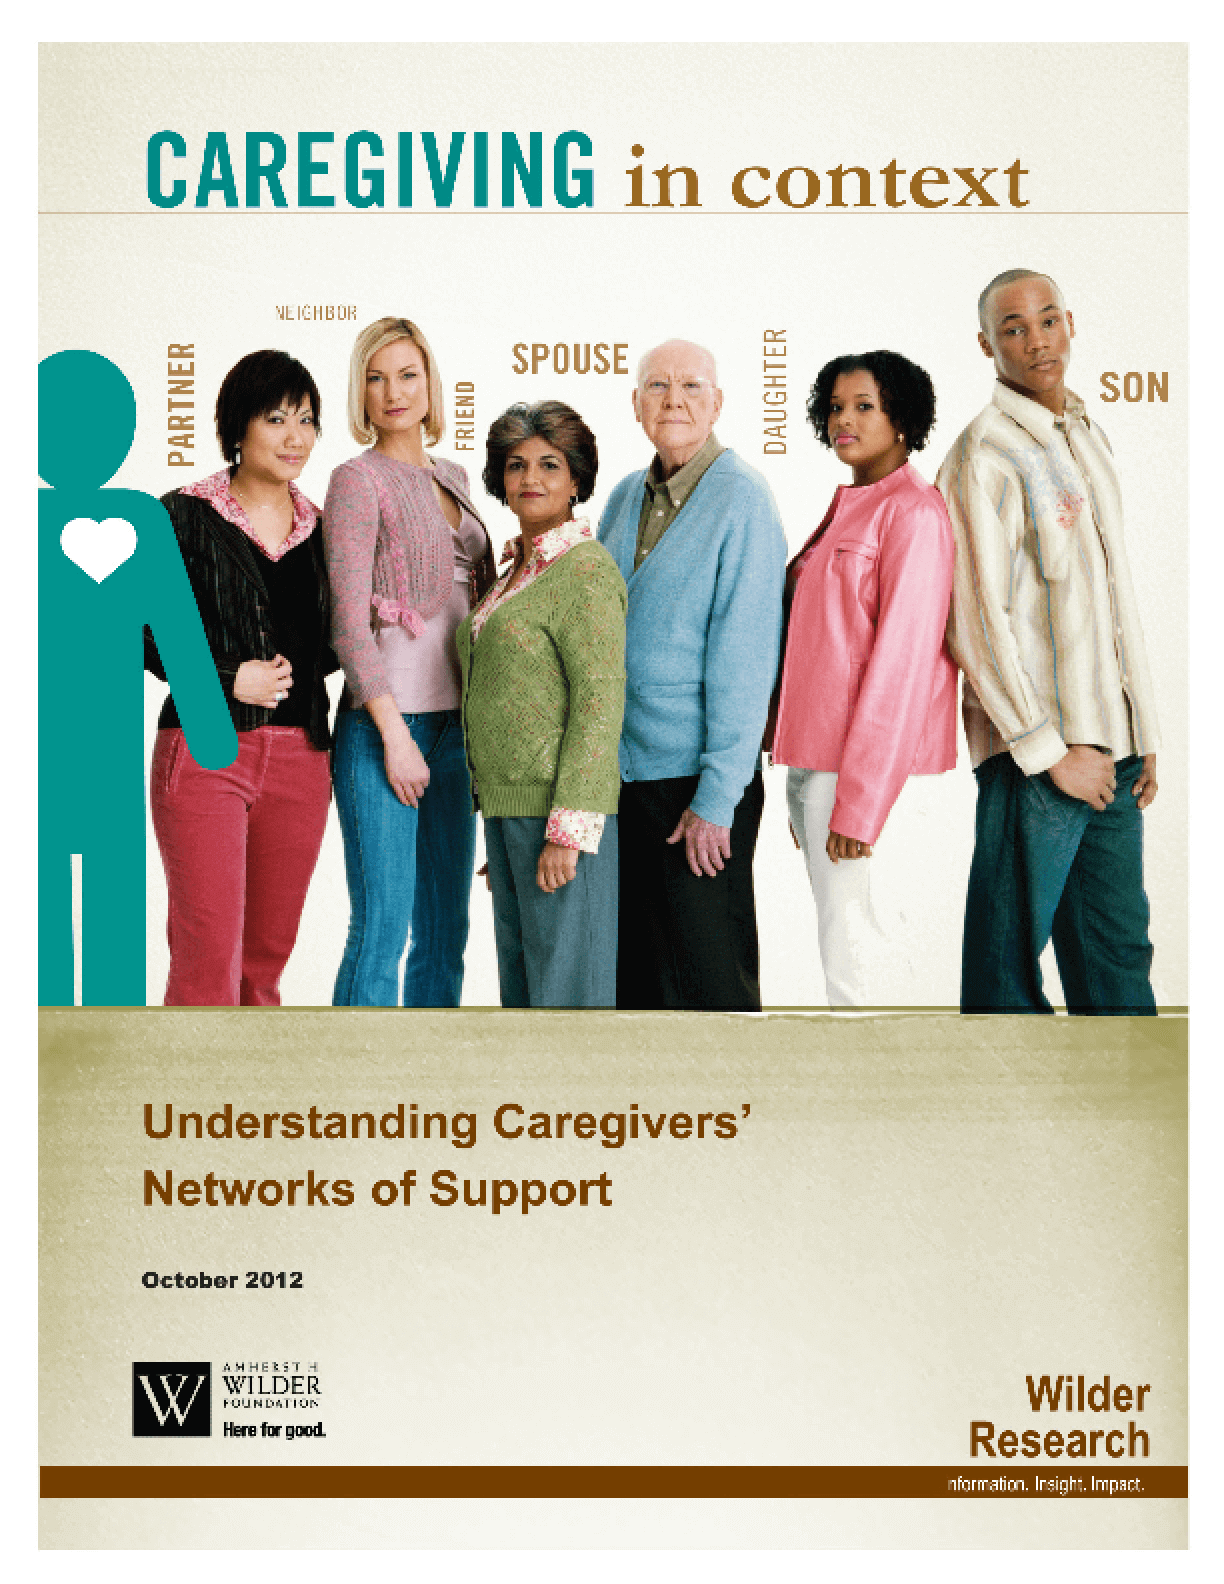 Caregiving in Context: Understanding Caregivers' Networks of Support